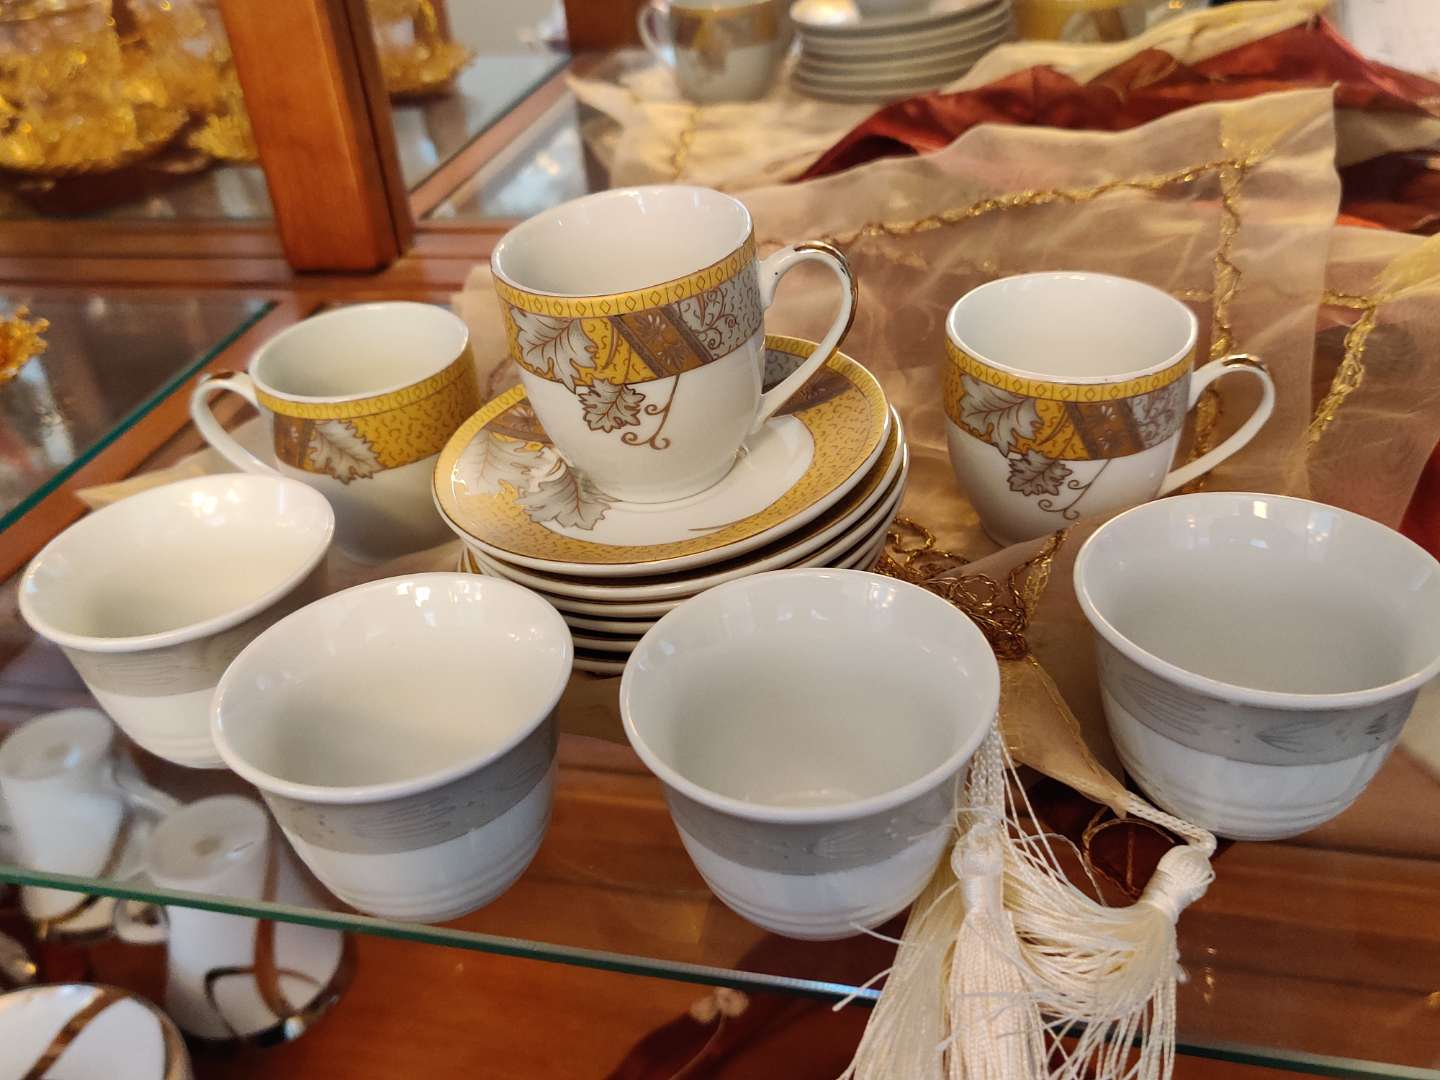 221 Lots of 13 pieces three cups and saucers extra saucers and four extra cups